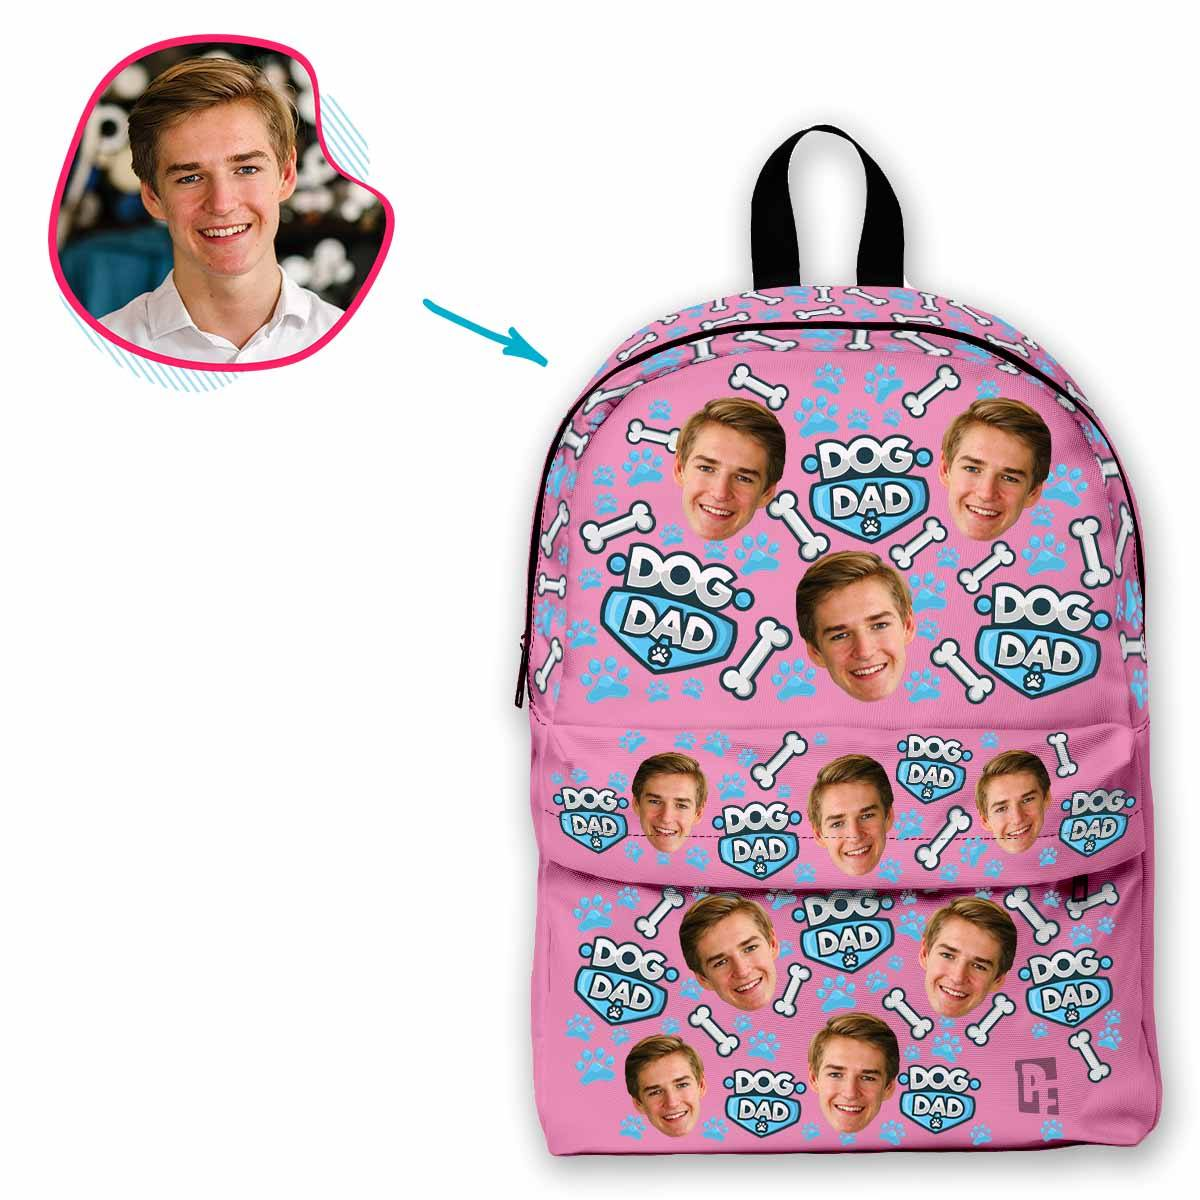 pink Dog Dad classic backpack personalized with photo of face printed on it